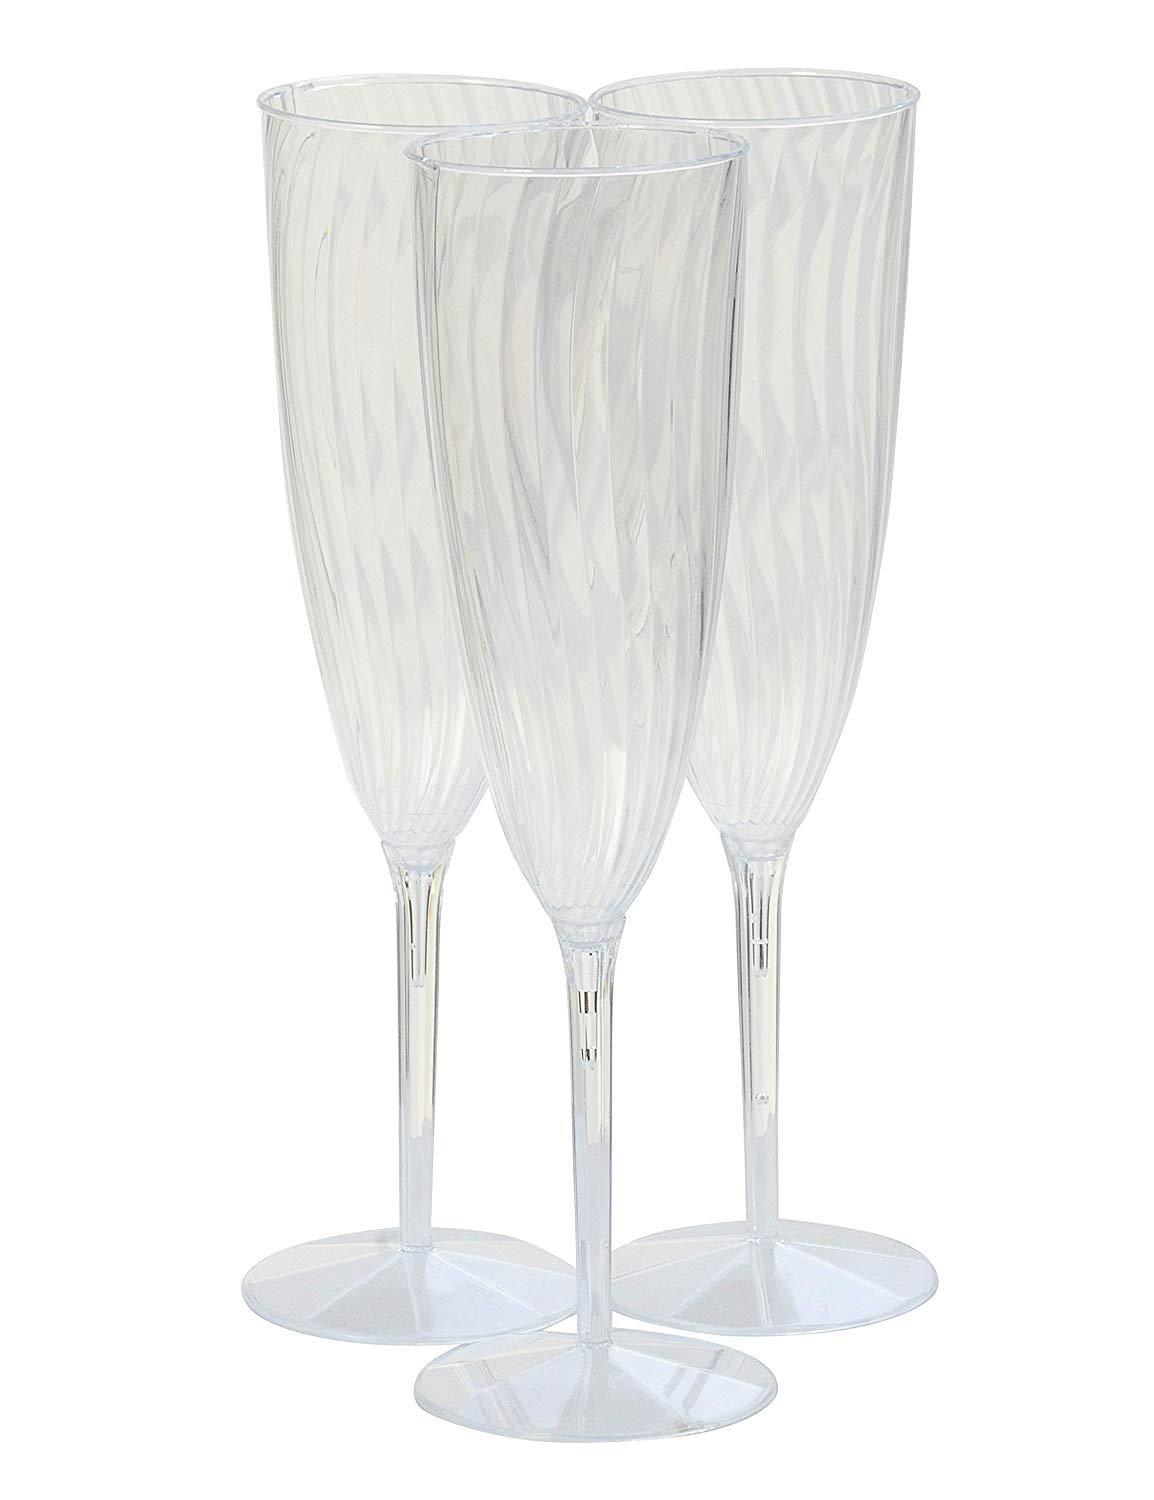 30 Piece Plastic Champagne Glasses, Disposable Wine/Cocktail/Mimosa Flutes, Unbreakable - Glasses For New Years, Weddings, Parties, Supplies